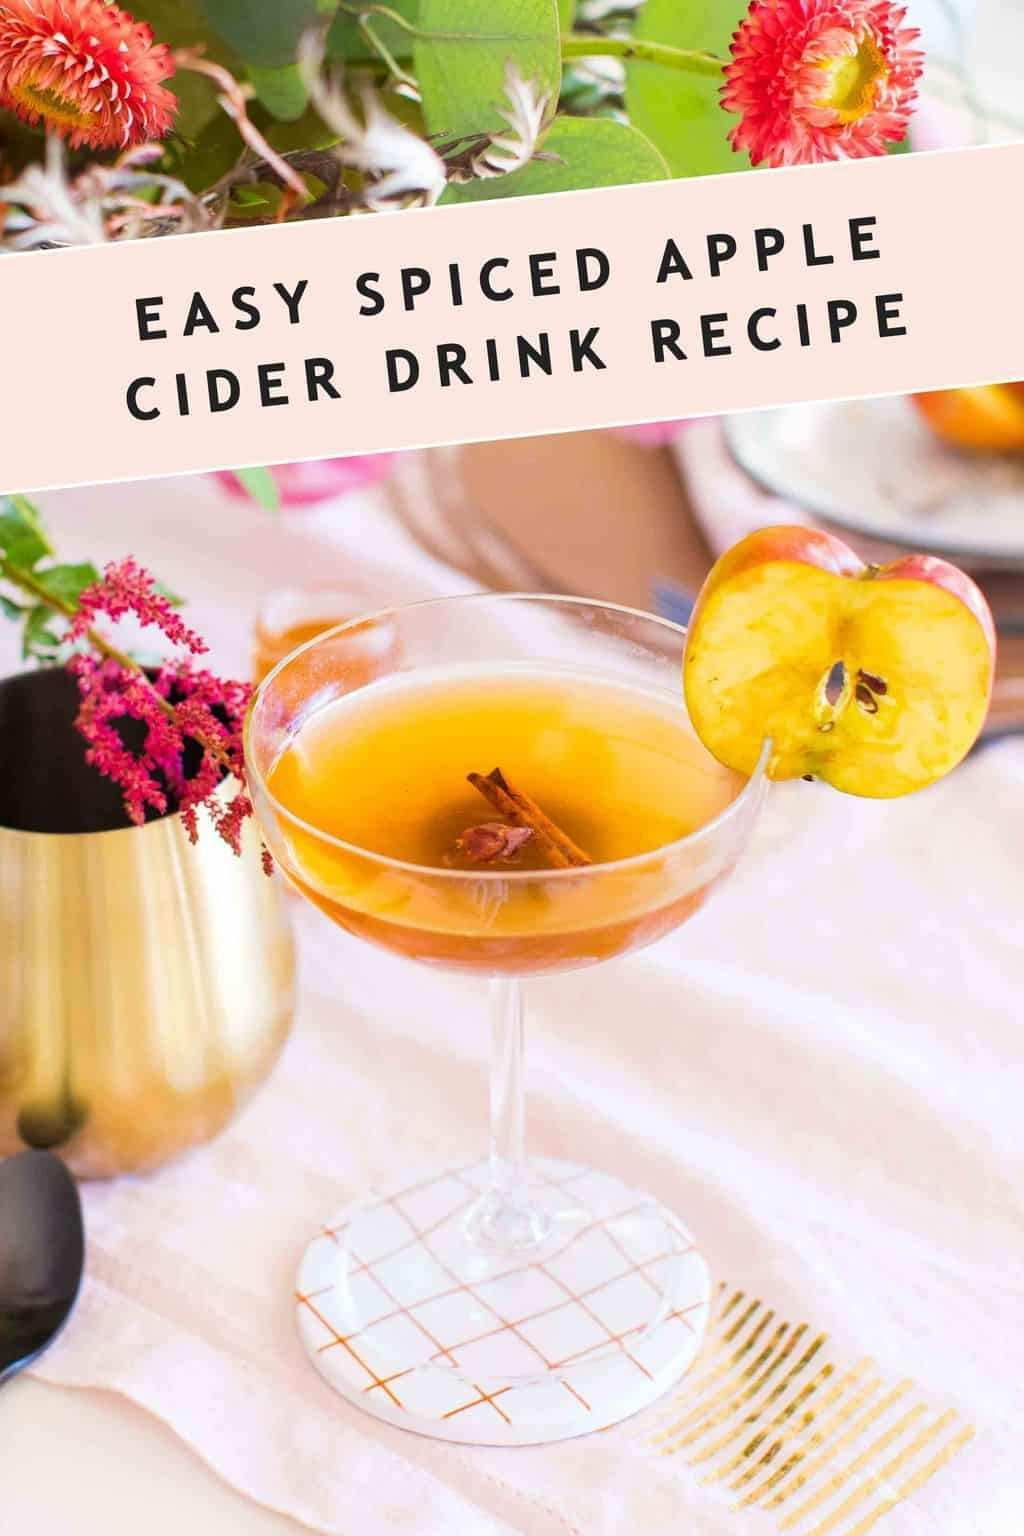 Serve This Easy Spiced Apple Cider Cocktail Or Mocktail Either Warm As A Spiced Drink Or Chilled As A Refreshing Punch It S A Delicious Wa In 2020 Herzlich Willkommen